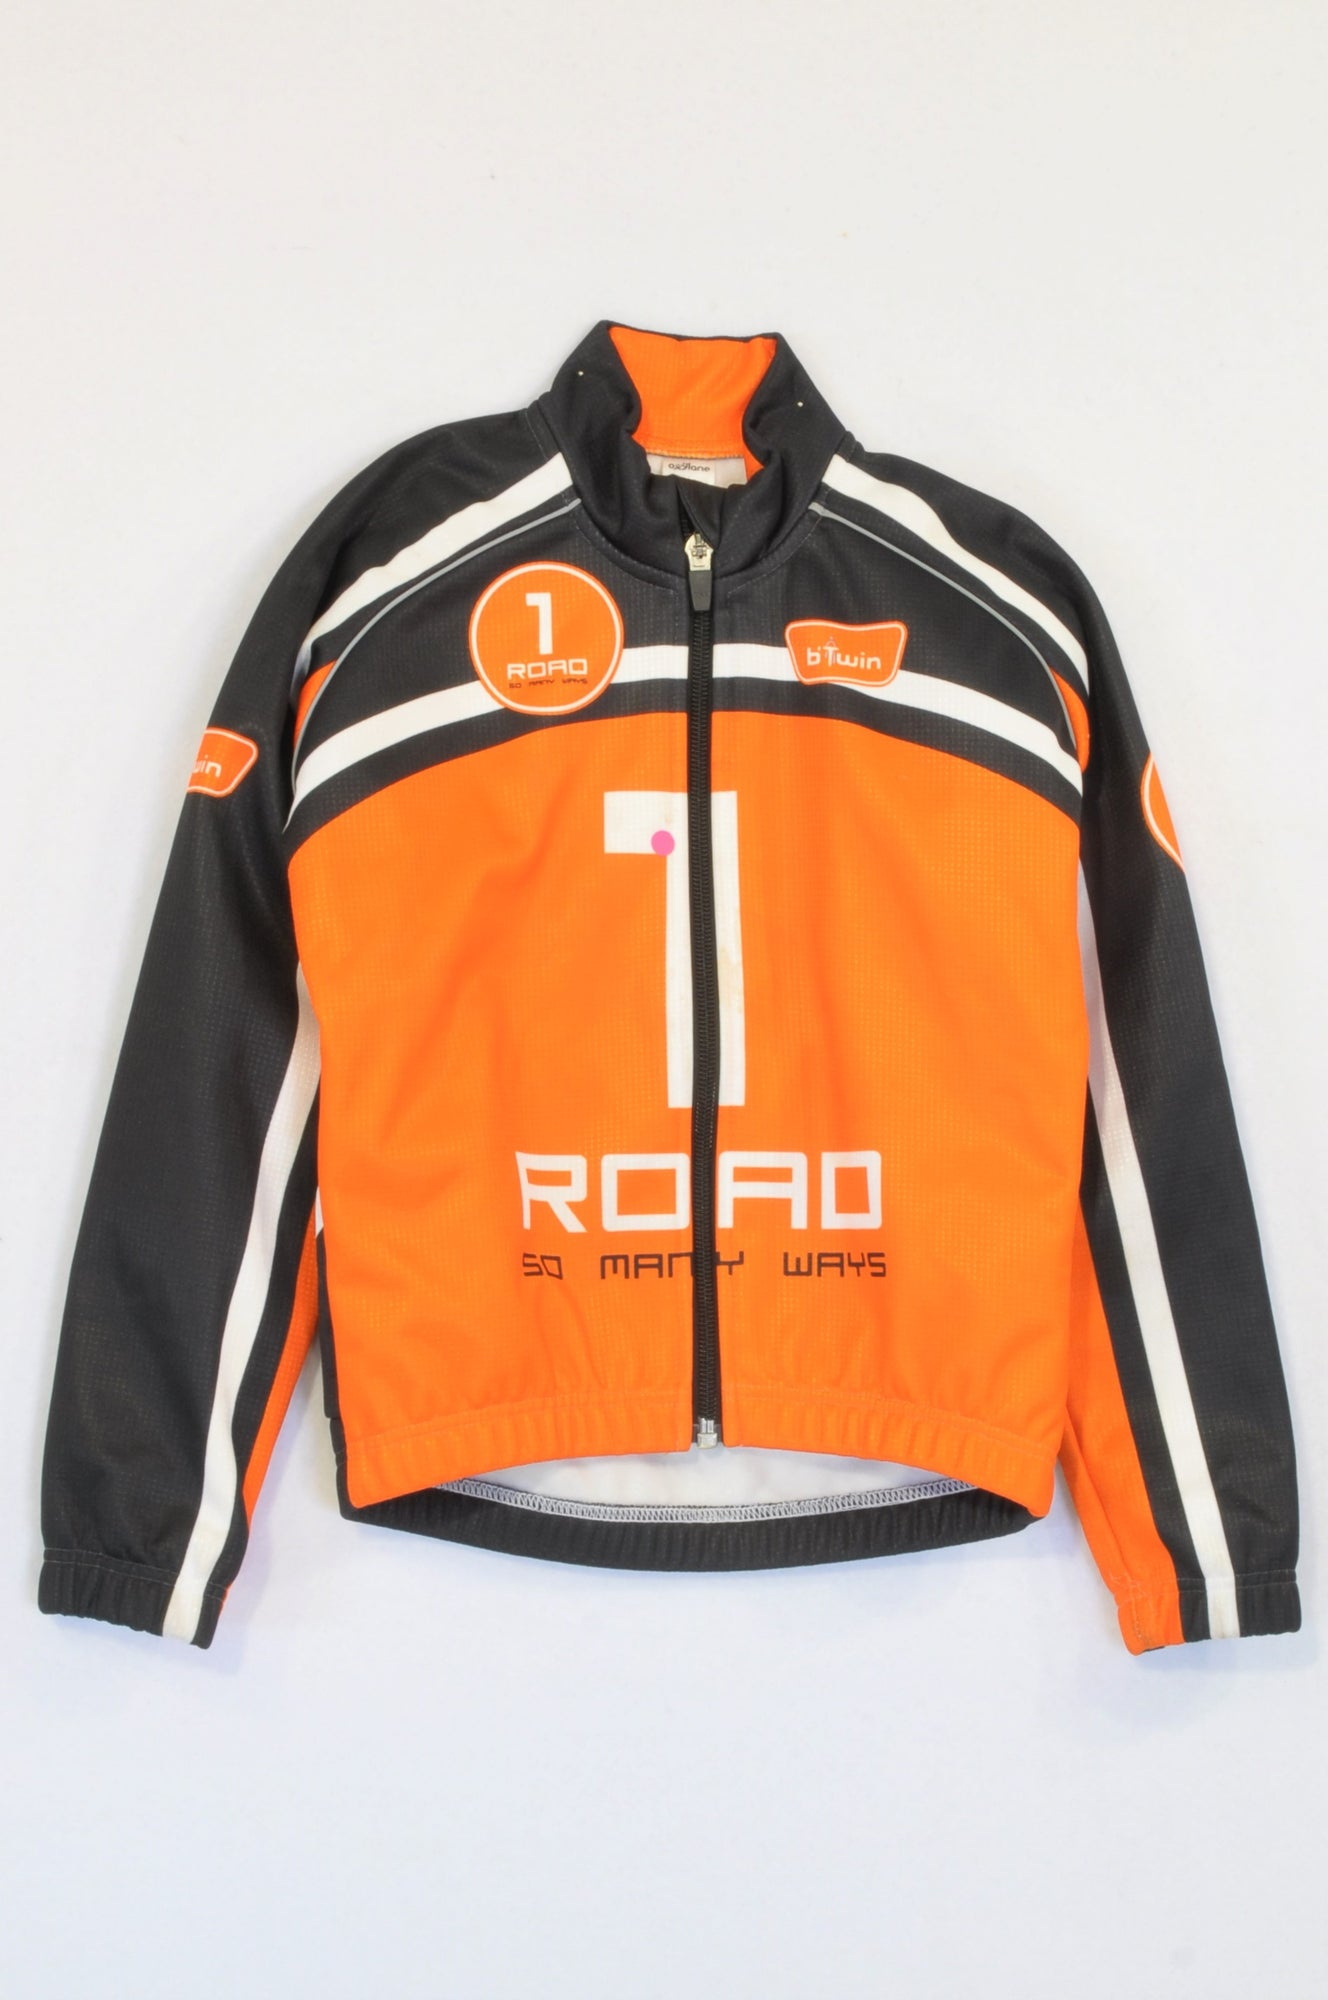 b Twin Orange & Black Cycling 1 Road So Many Way Zip Jacket Boys 5-6 years